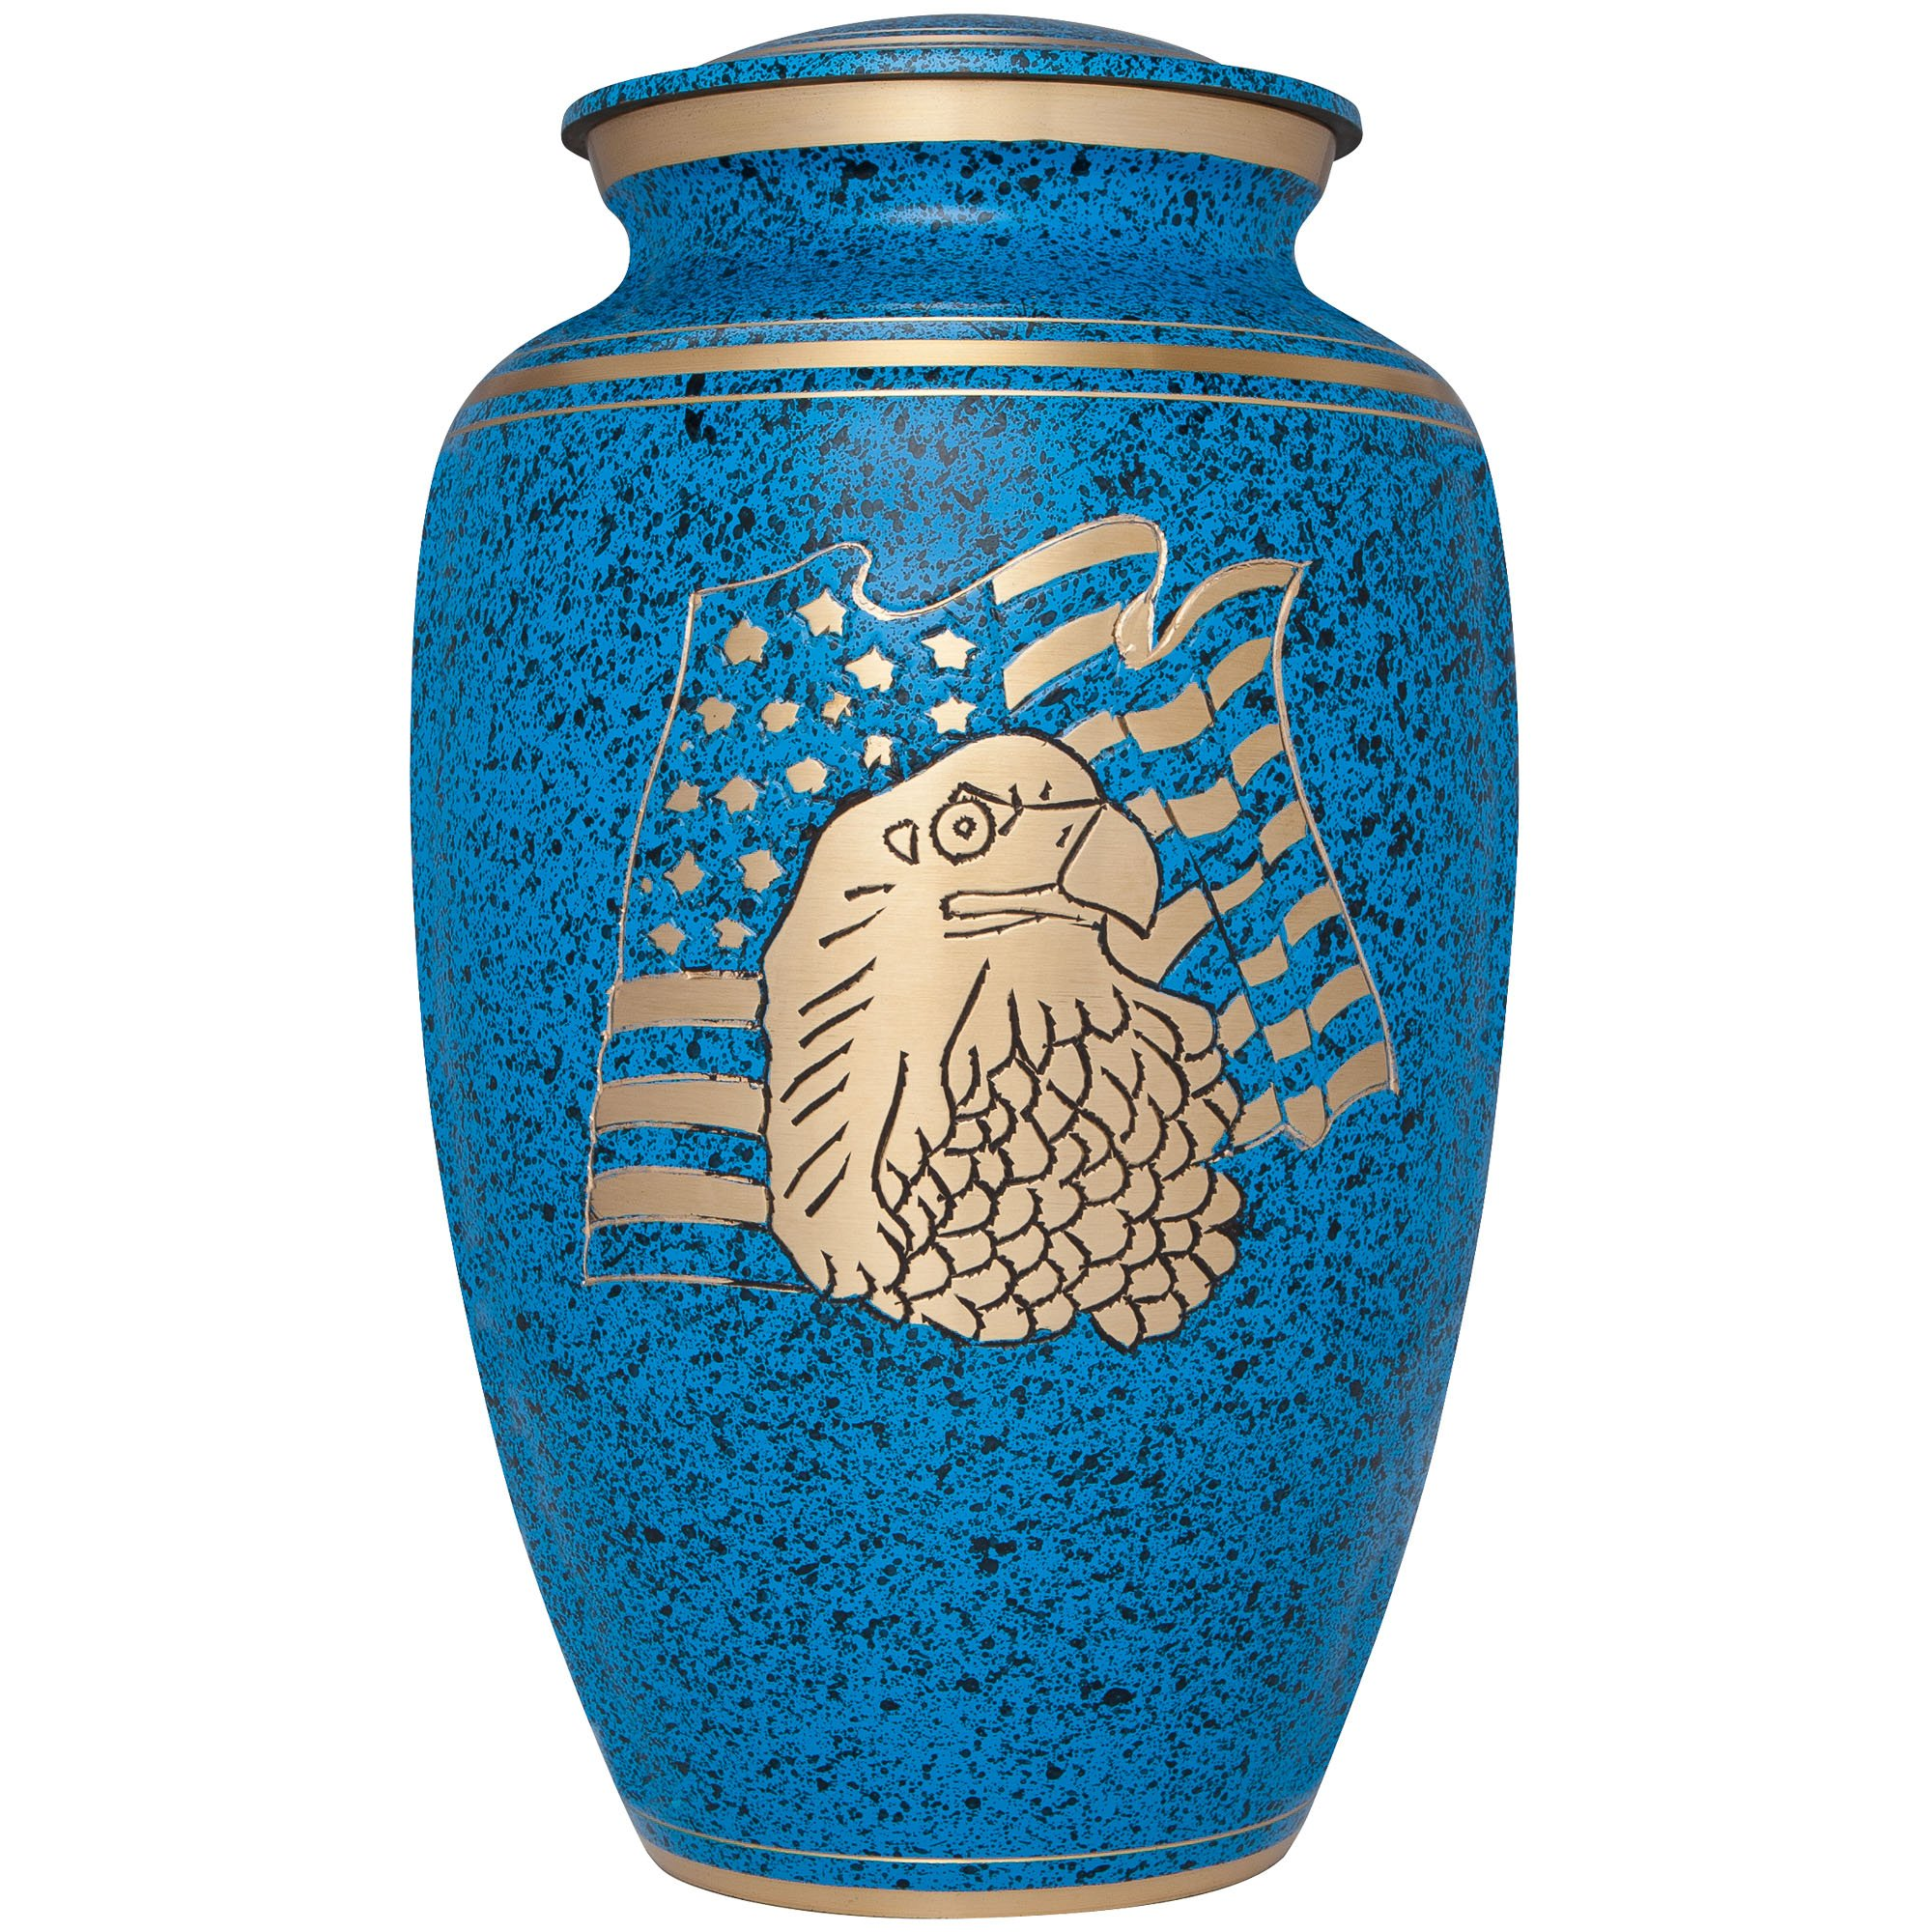 Liliane Memorials Blue Funeral Cremation Urn with American Flag Eagle Model in Brass for Human Ashes Suitable for Cemetery Burial Large Size Fits Remains of Adults up to 200 lbs, Large/200 lb by Liliane Memorials